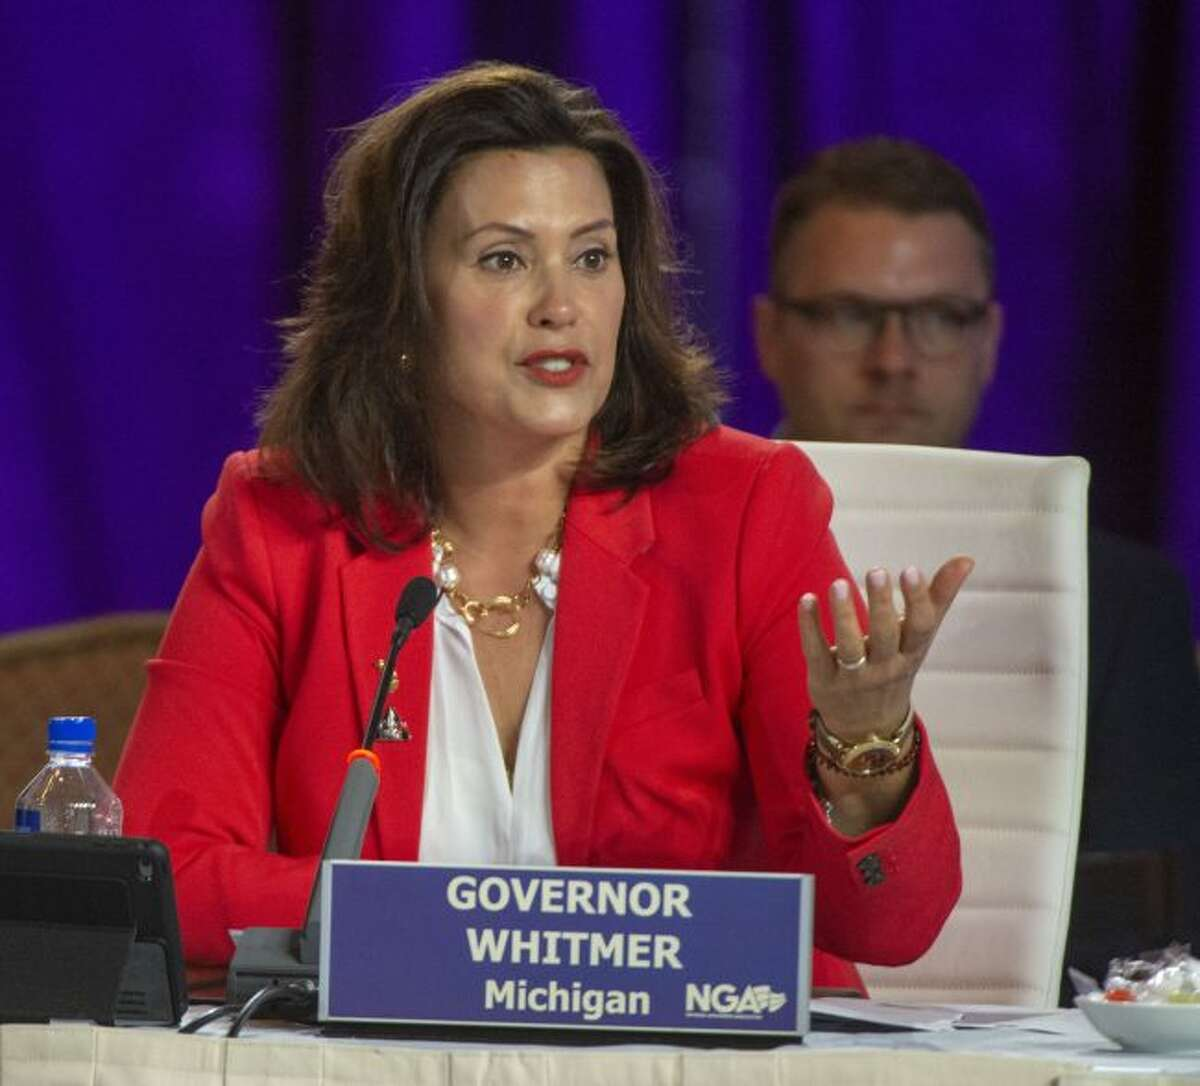 In this July 26, 2019, file photo, Michigan Gov. Gretchen Whitmer speaks during a session at the National Governor's Association conference in Salt Lake City. Five Democratic governors of states in the Great Lakes region want candidates in next year's presidential election, including President Trump, to back a plan for protecting their freshwater resources. Led by Whitmer, the governors on Monday, July 29, 2019, proposed a six-point platform that seeks increases in federal spending on water treatment infrastructure and environmental cleanups. (Rick Egan/The Salt Lake Tribune via AP, File)